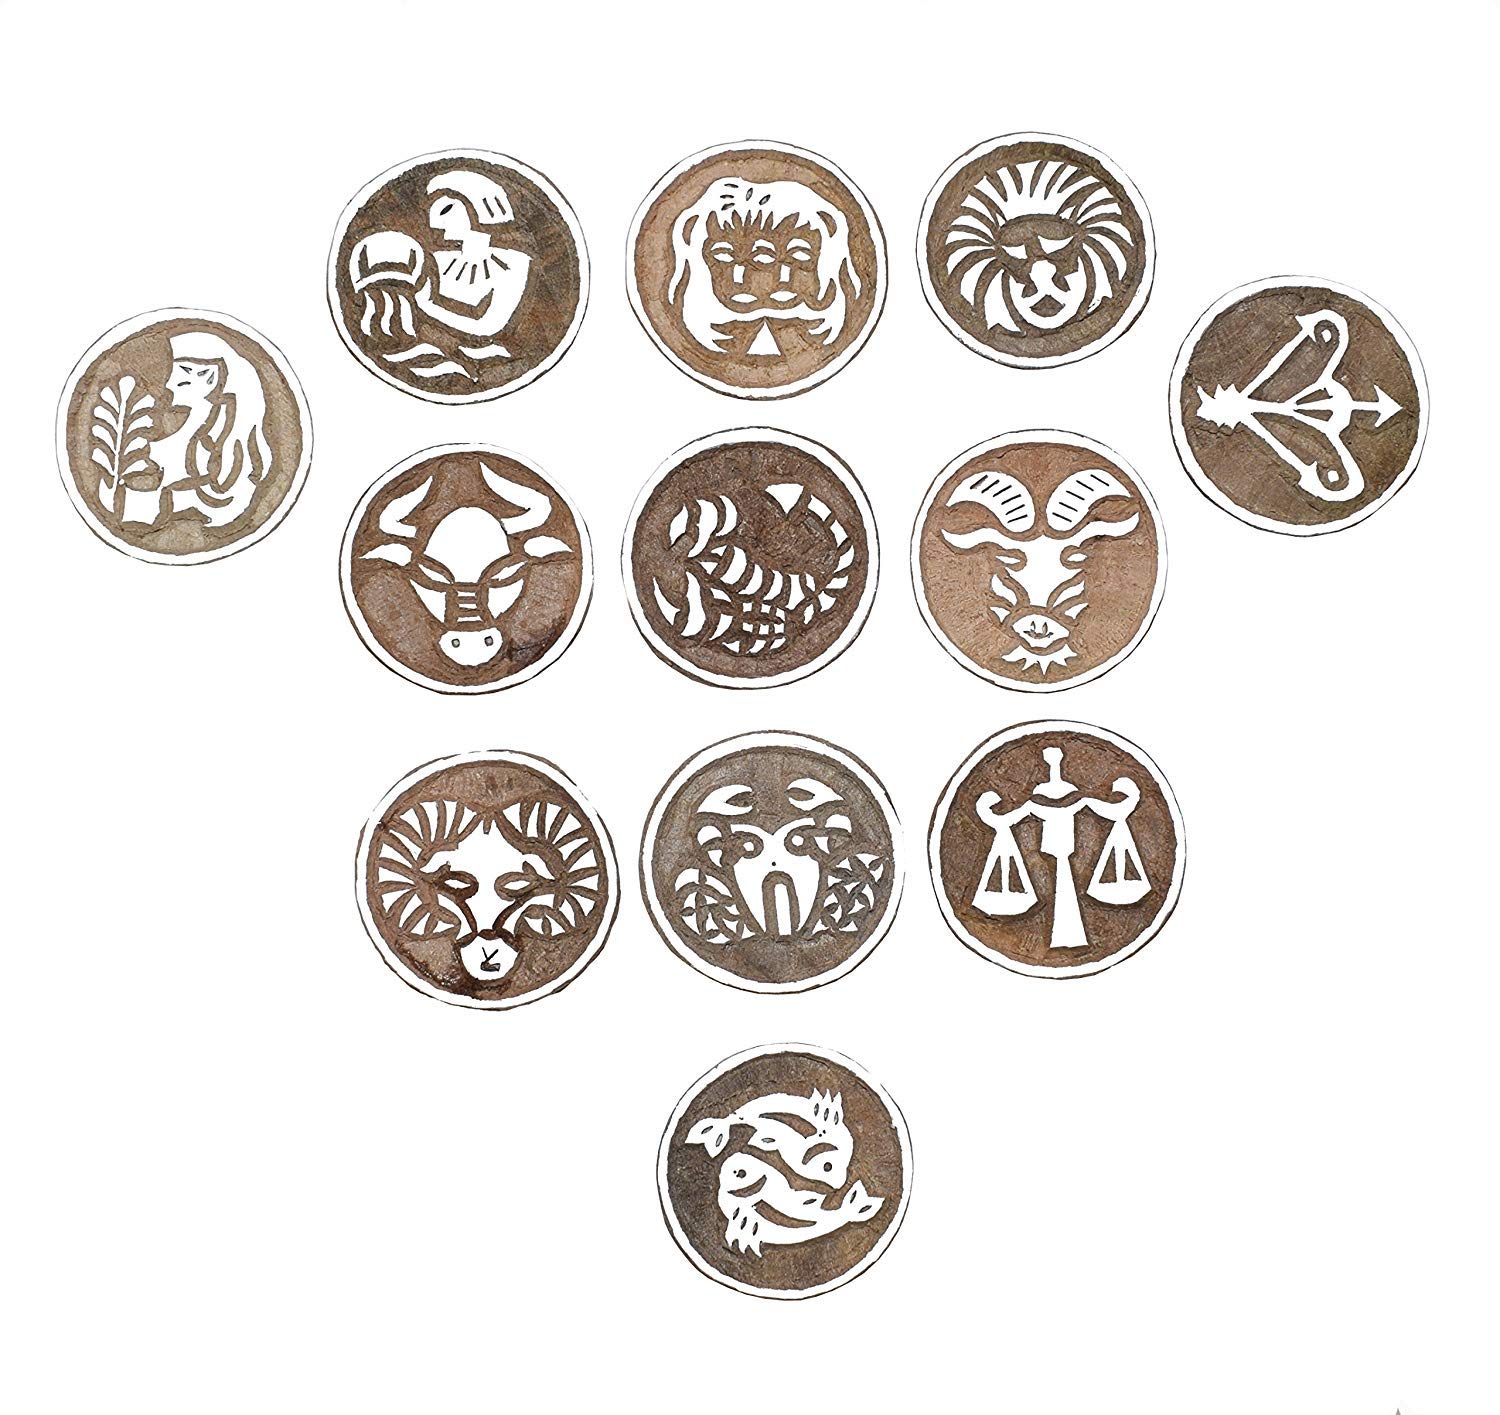 PARIJAT HANDICRAFT Printing Stamps Astrology Horoscope Design Wooden Blocks (Set of 12) Hand-Carved for Saree Border Making Pottery Crafts Textile Printing